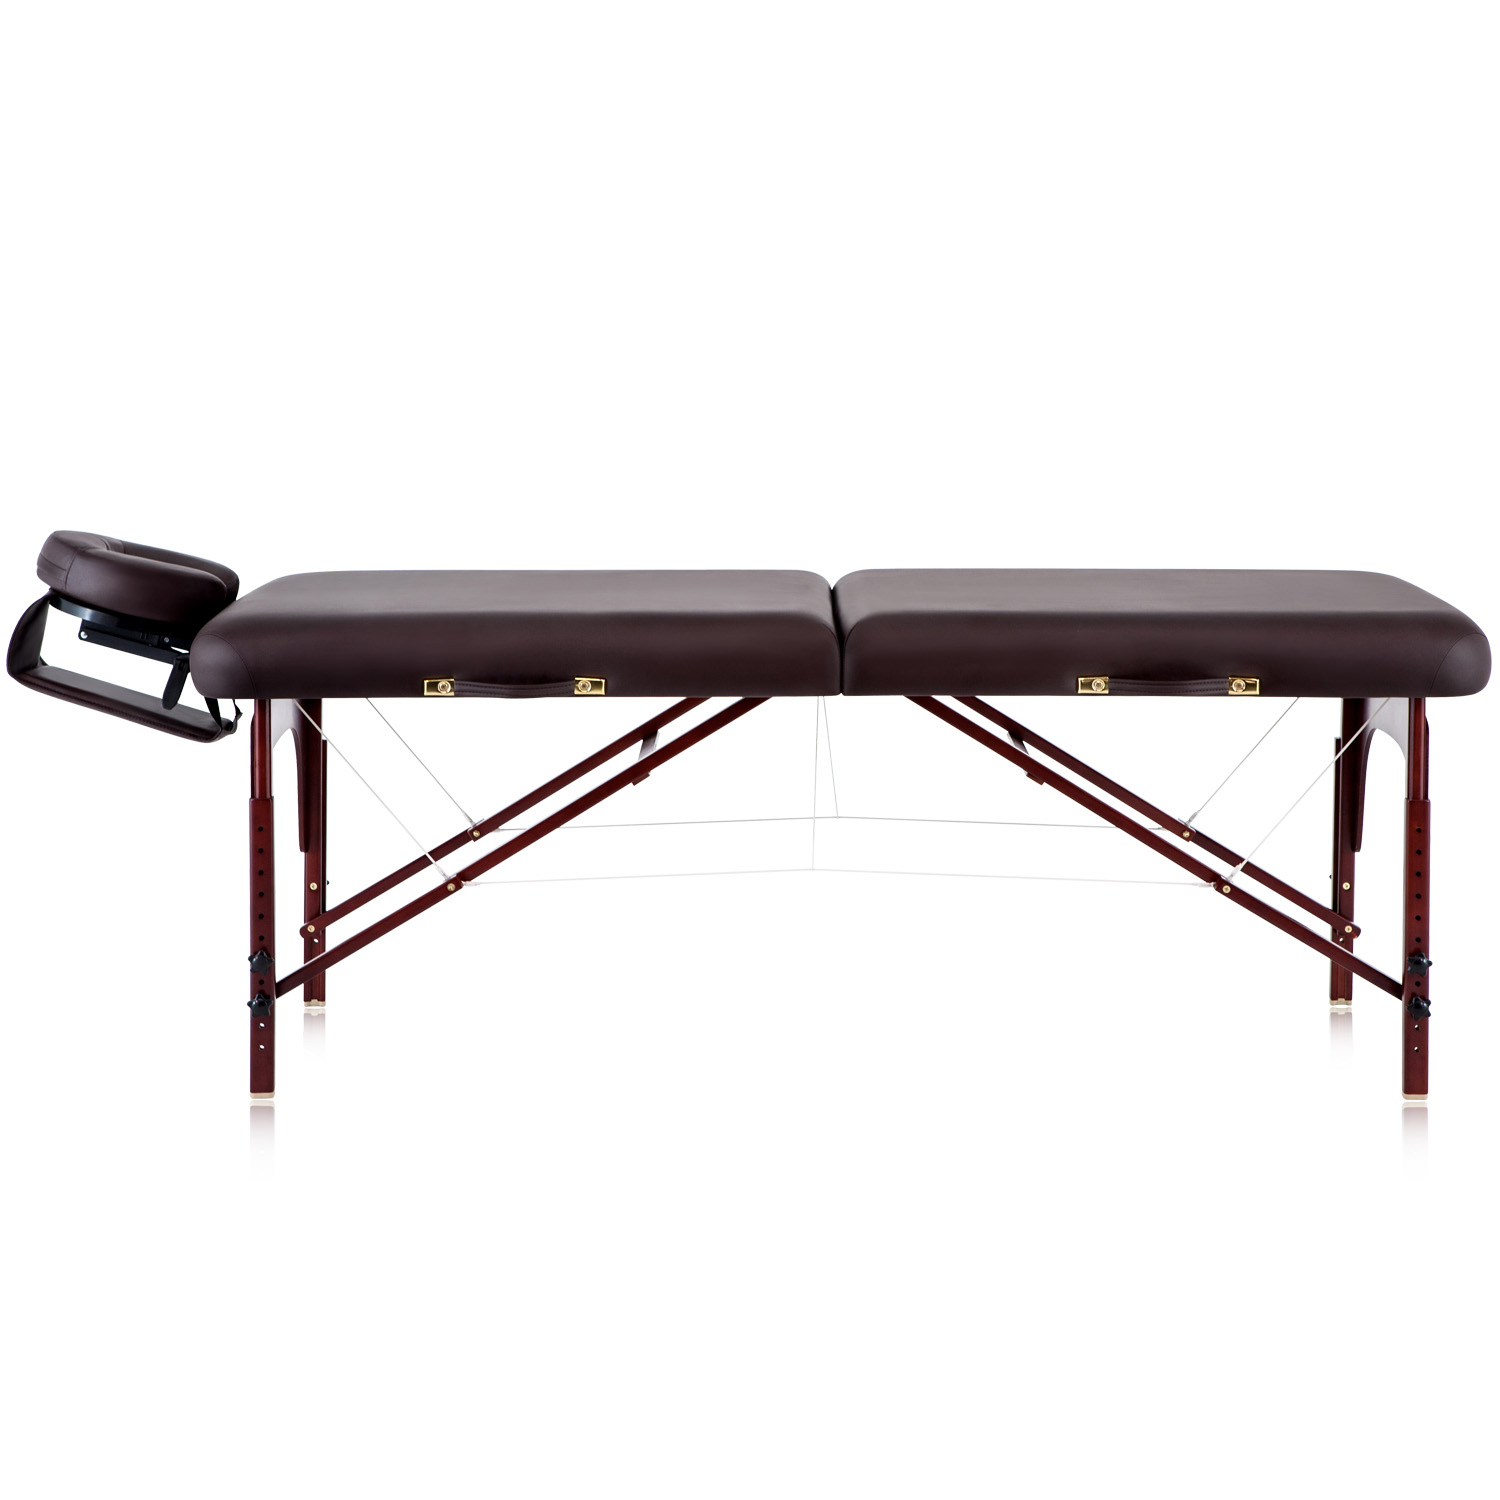 table hull gumtree p for in east products sale massage yorkshire